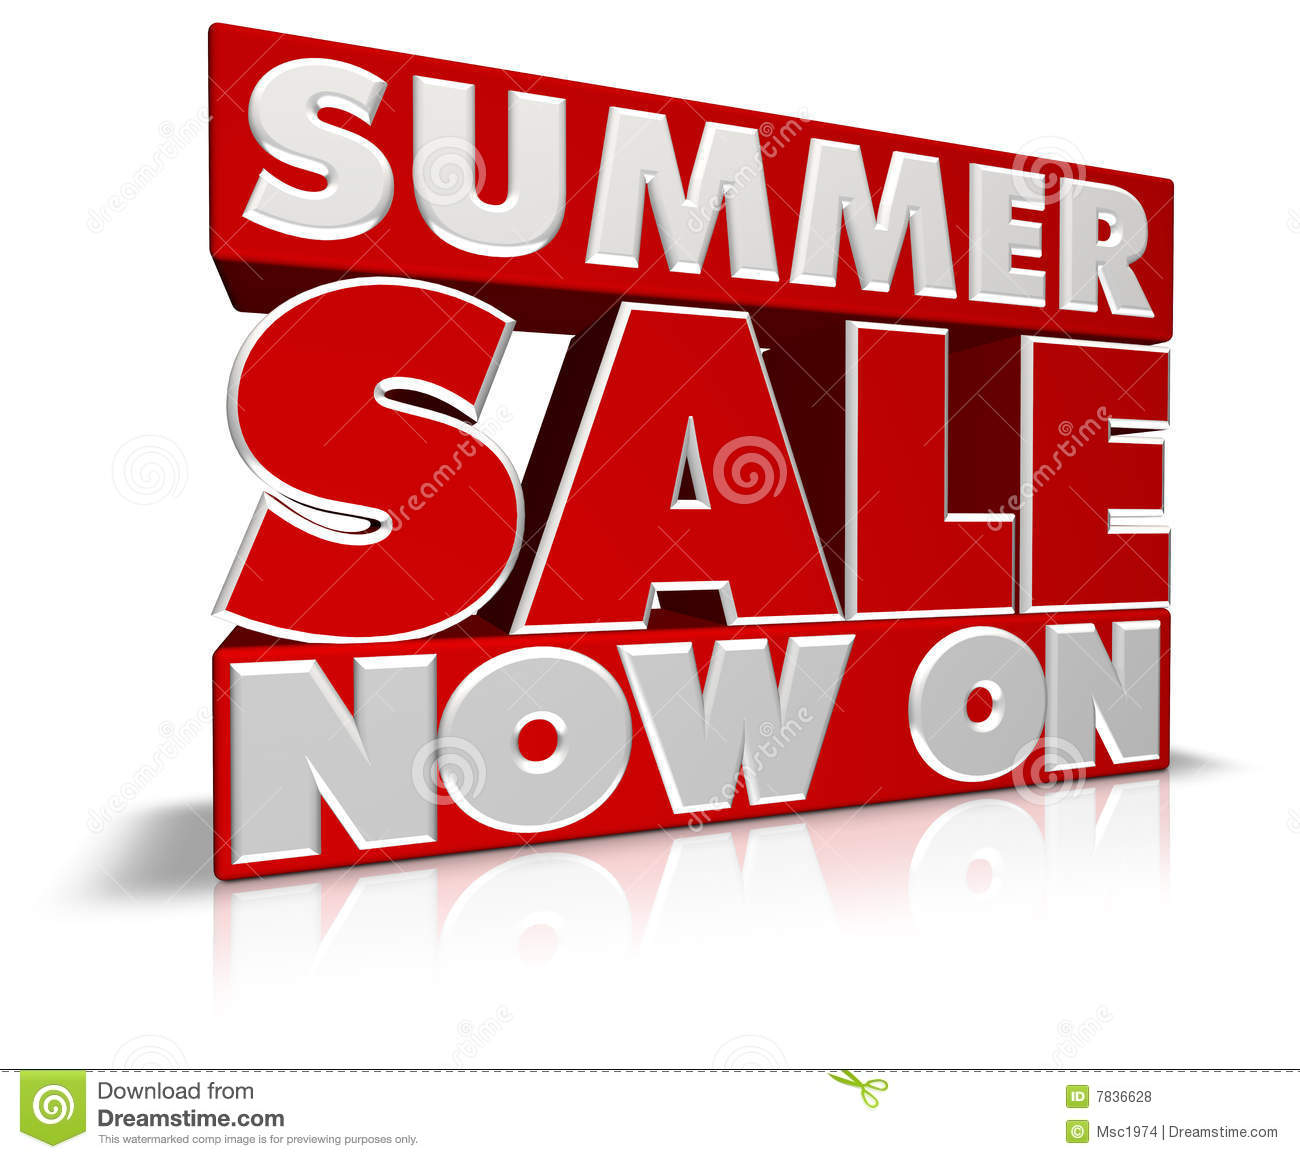 Sale: Summer Sale Now On Stock Illustration. Image Of Sale